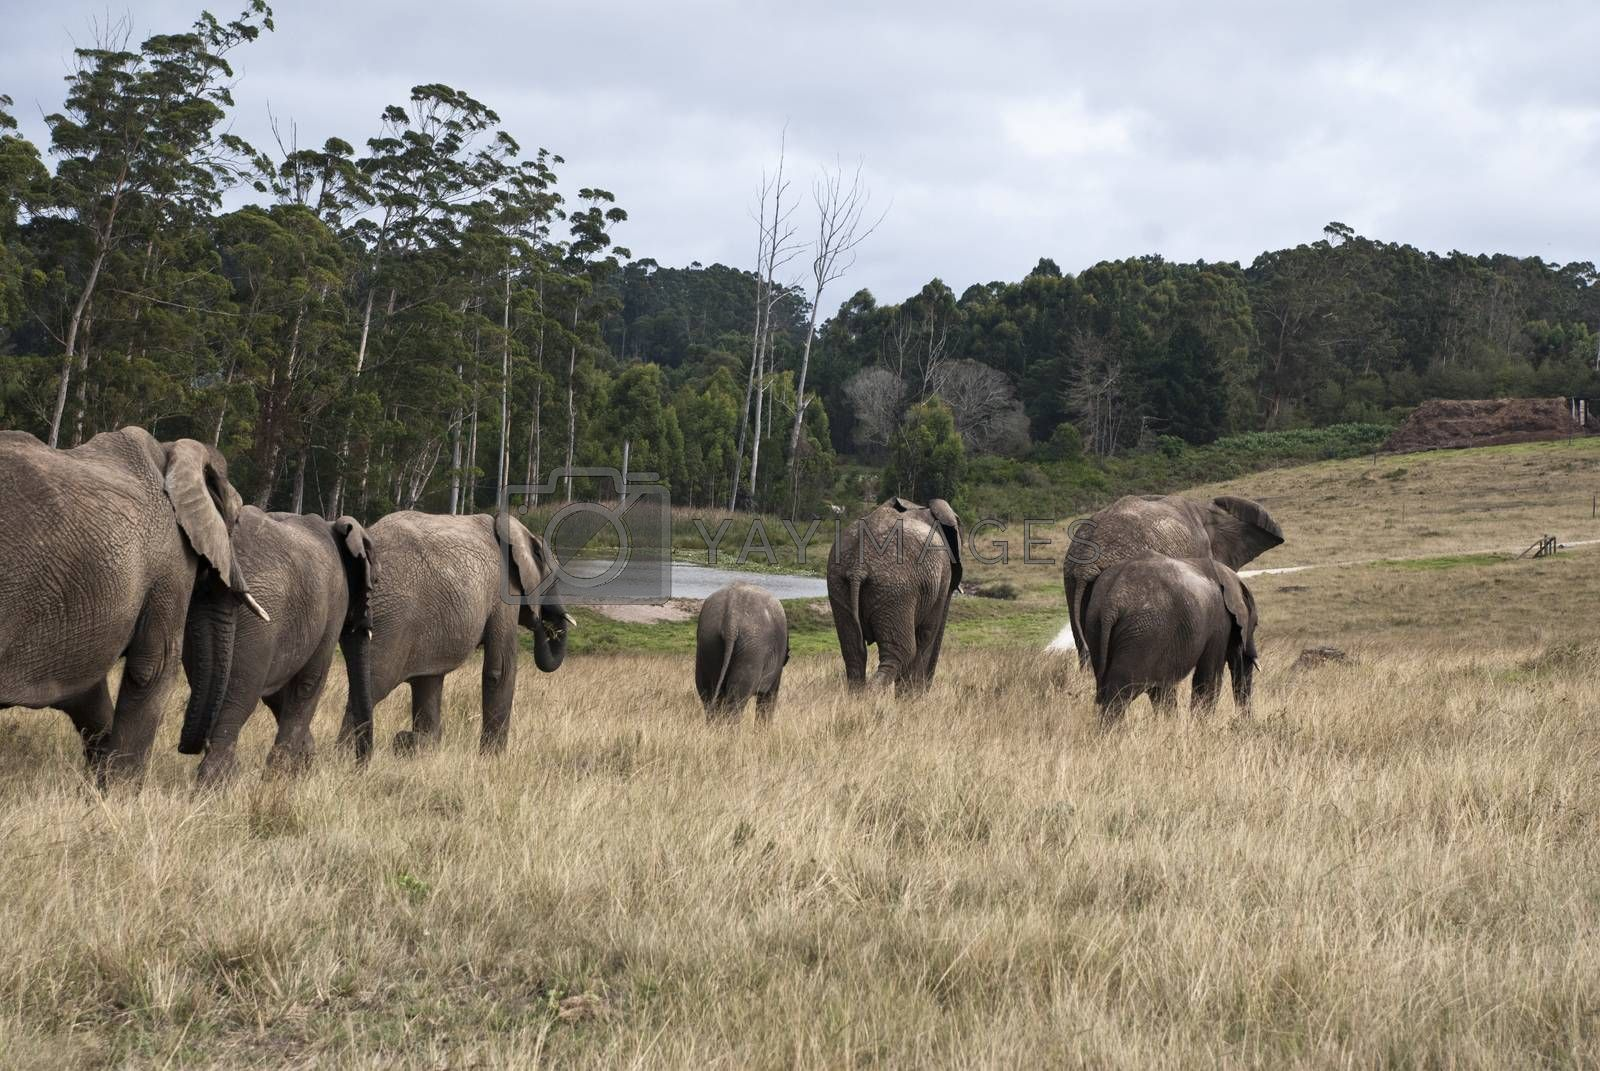 Herd of elephants walking in a game reserve, south africa by Anna07